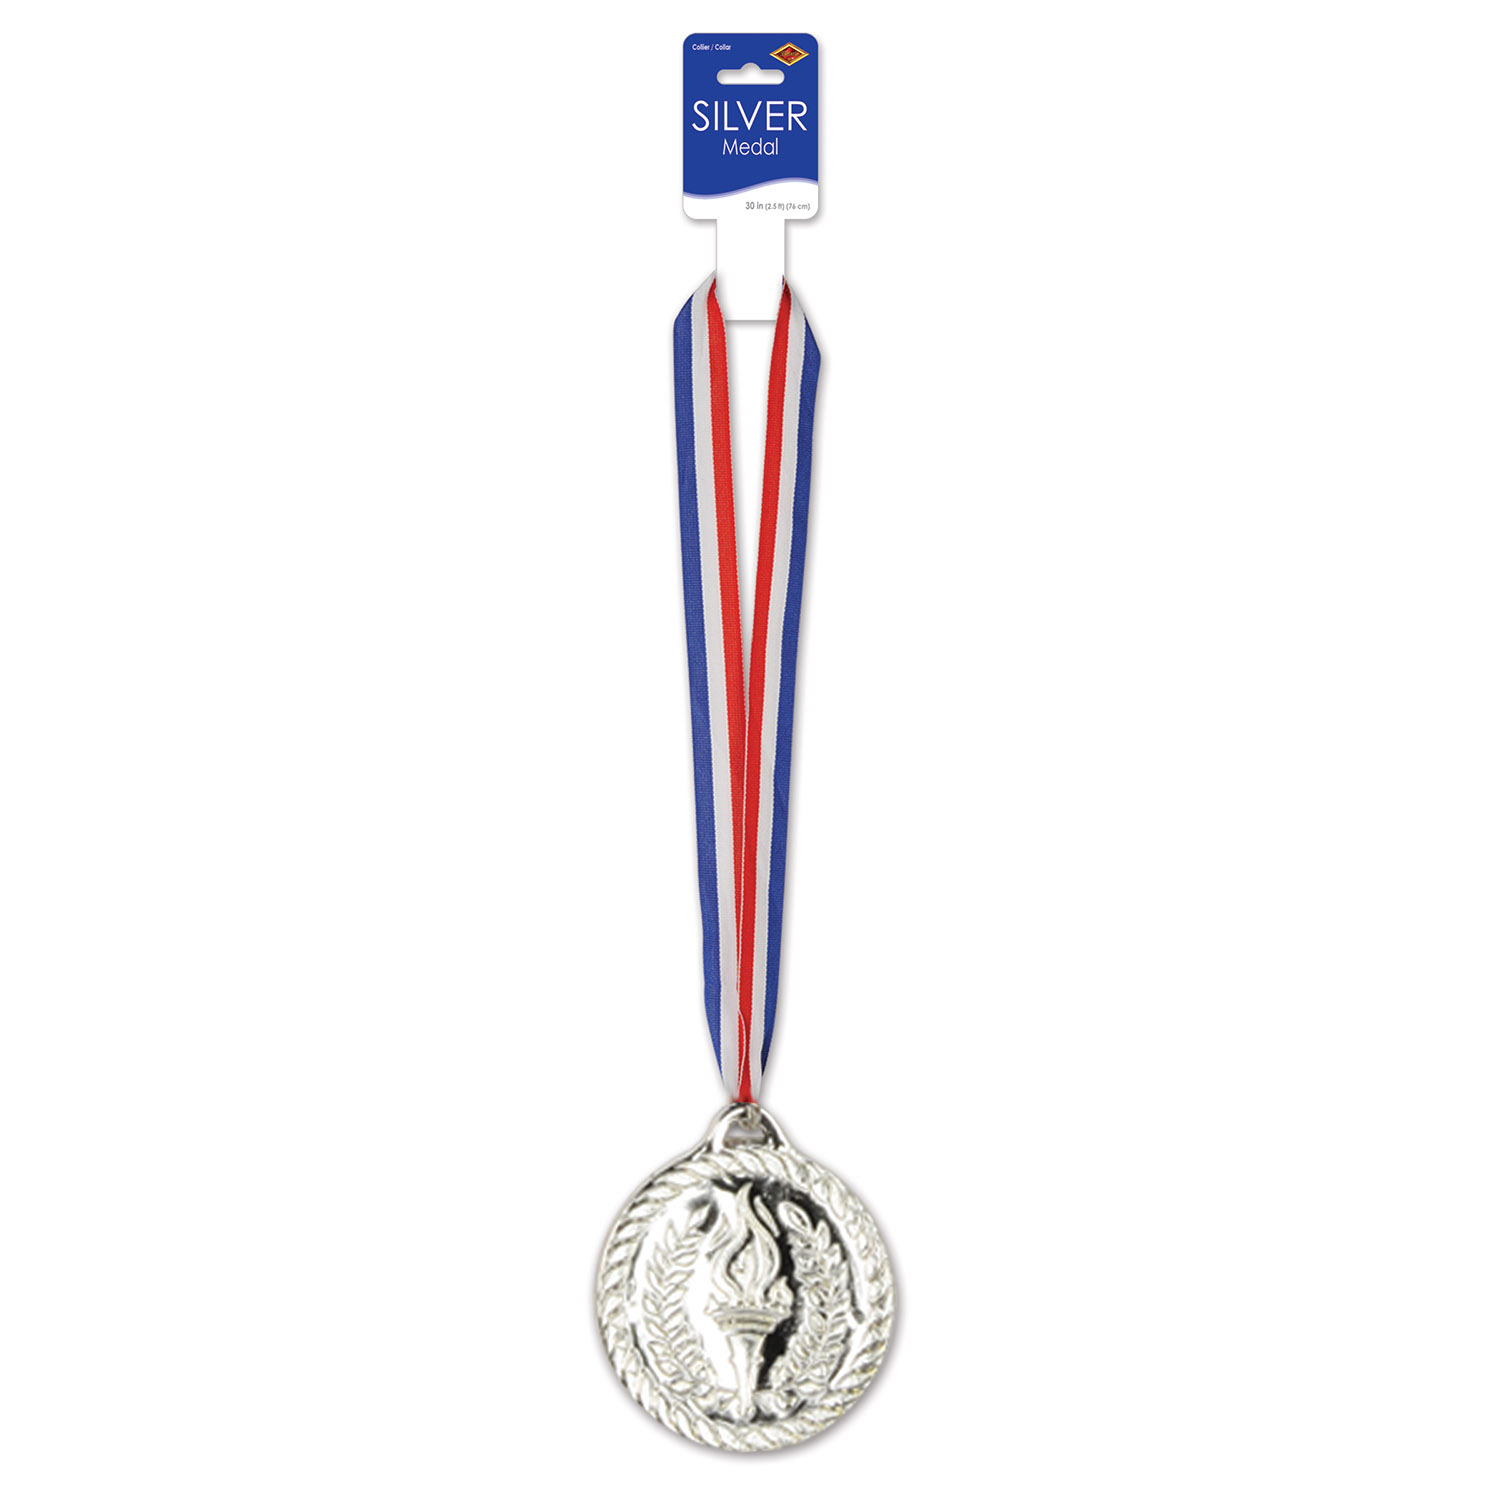 Silver Medal with Ribbon (Pack of 12) 2nd Place Medal, Second Place, Silver Medal, Sports Award, Sports Ribbon, Inexpensive Awards Medal, Wholesale party supplies